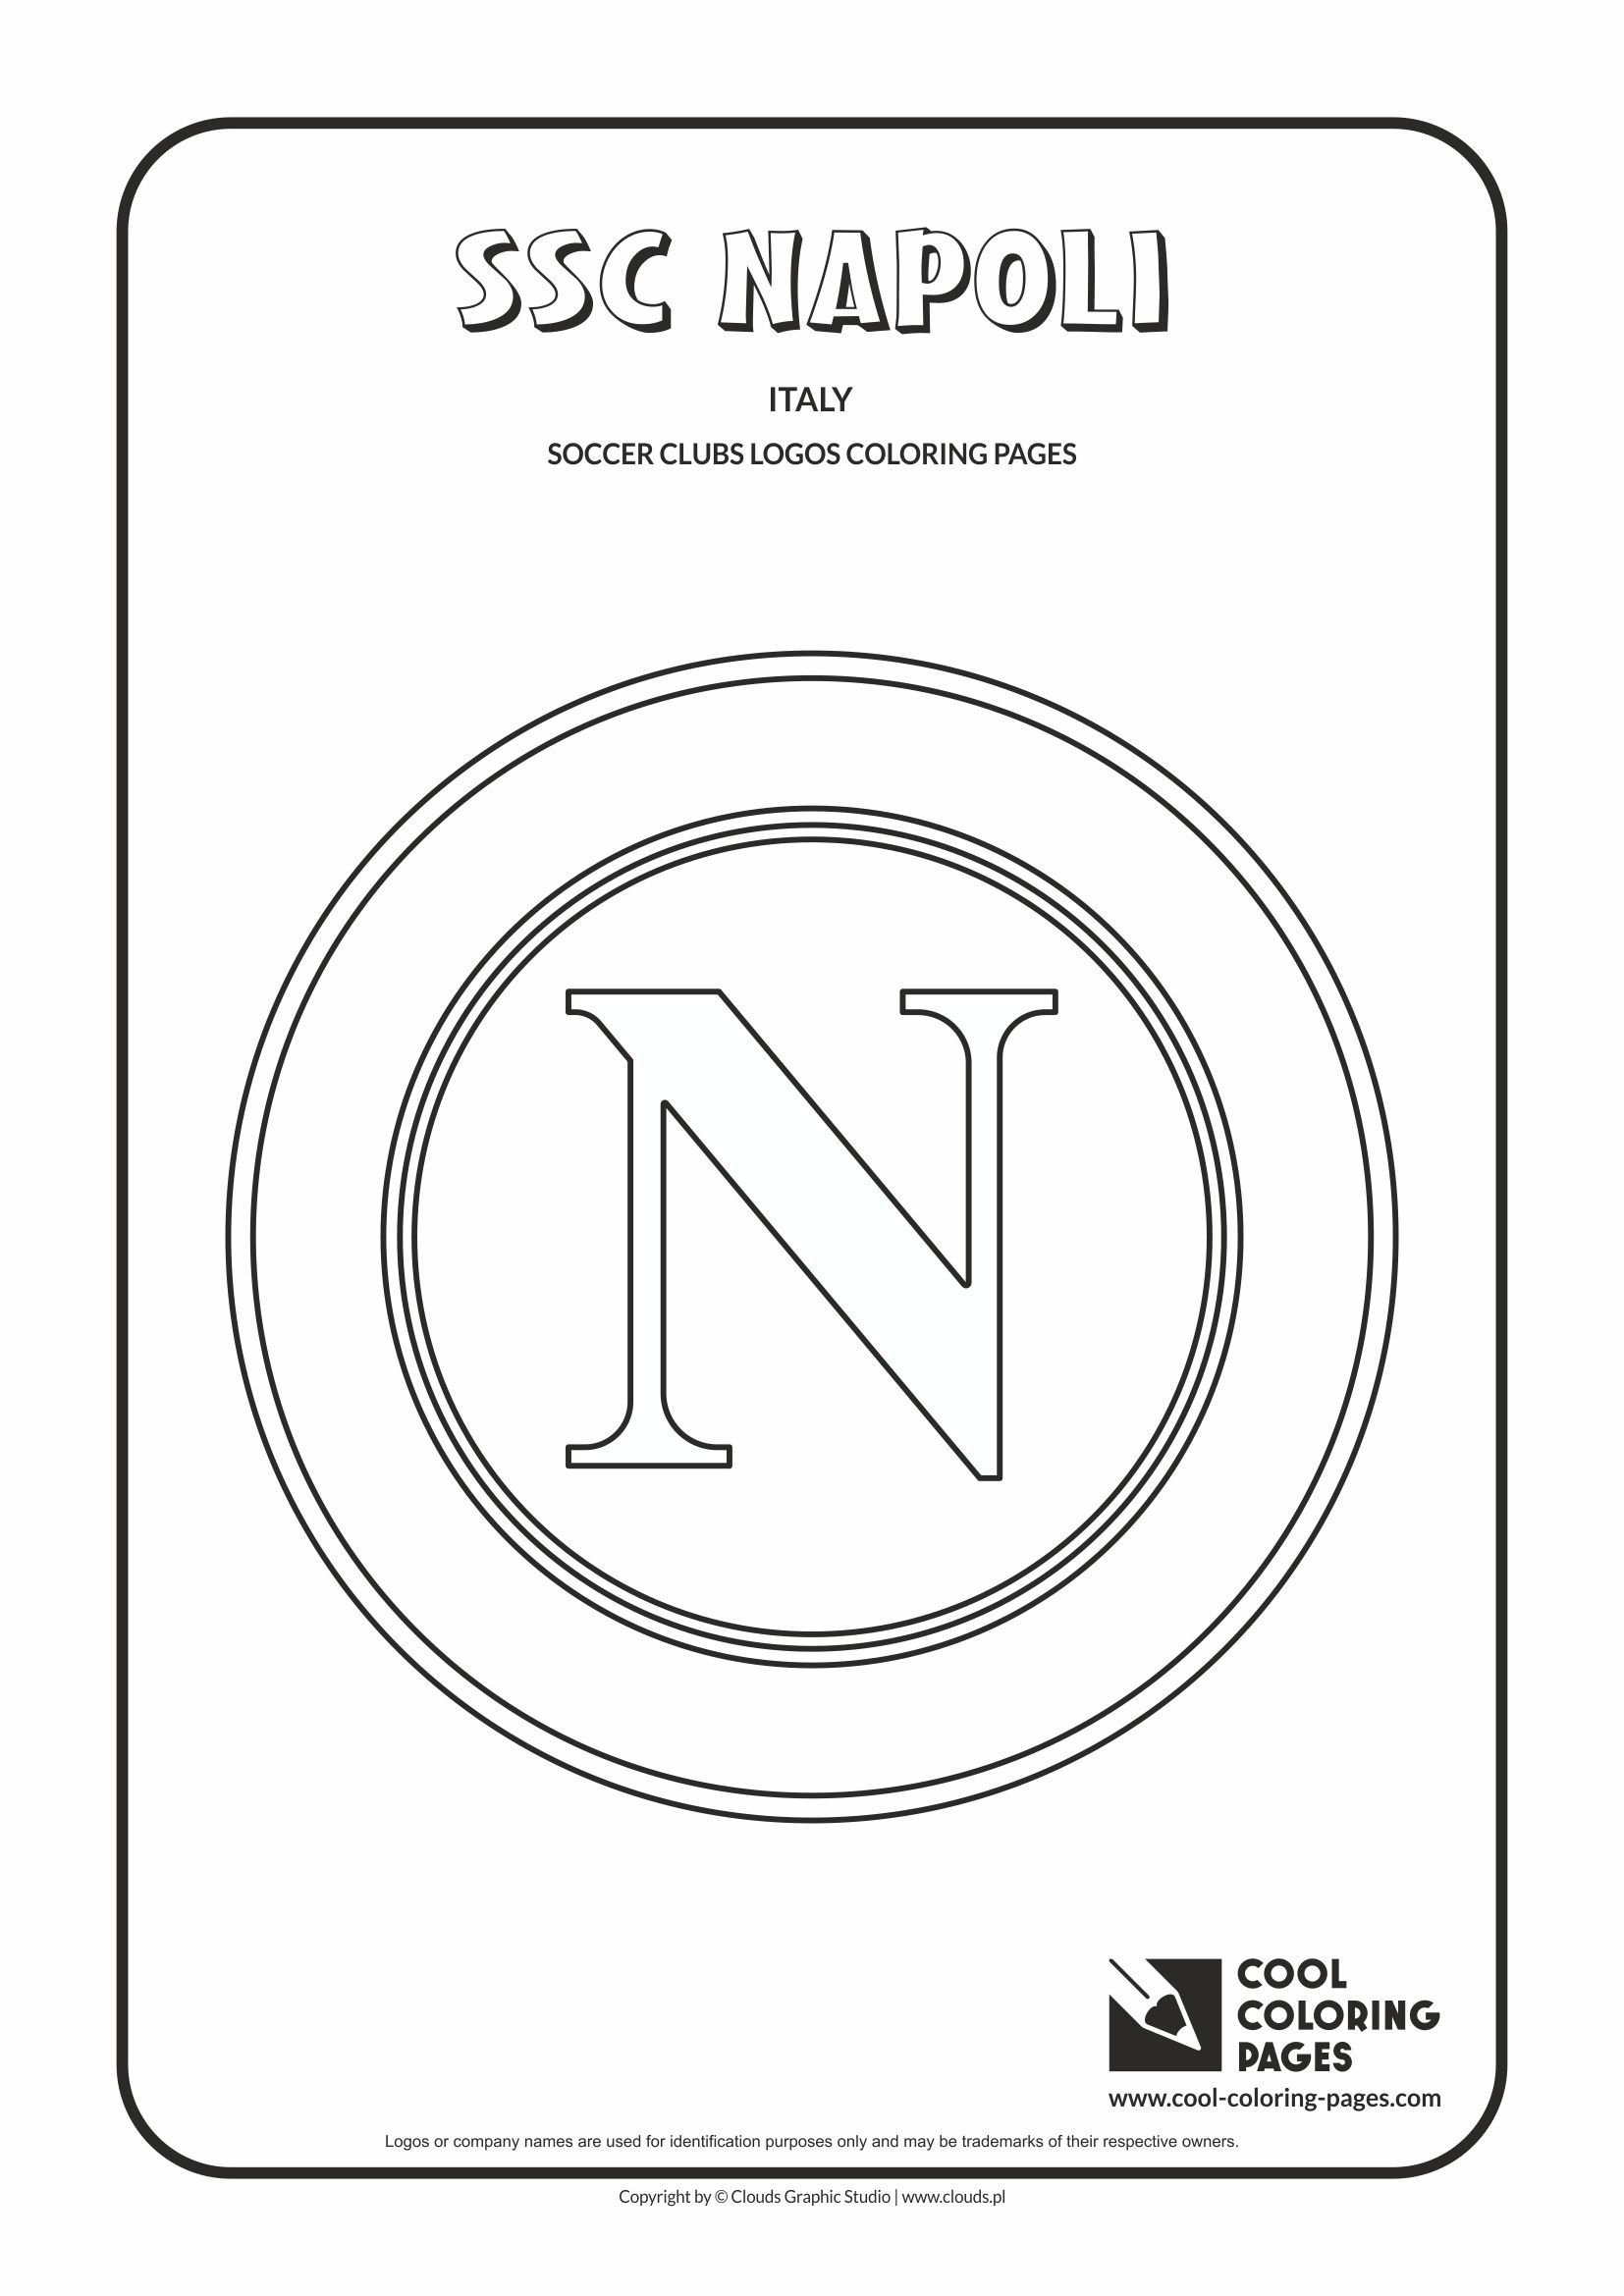 S S C Napoli Logo Coloring Coloring Page With S S C Napoli Logo Napoli Logo Colouring Page Cool Coloring Pages Coloring Pages Soccer Club